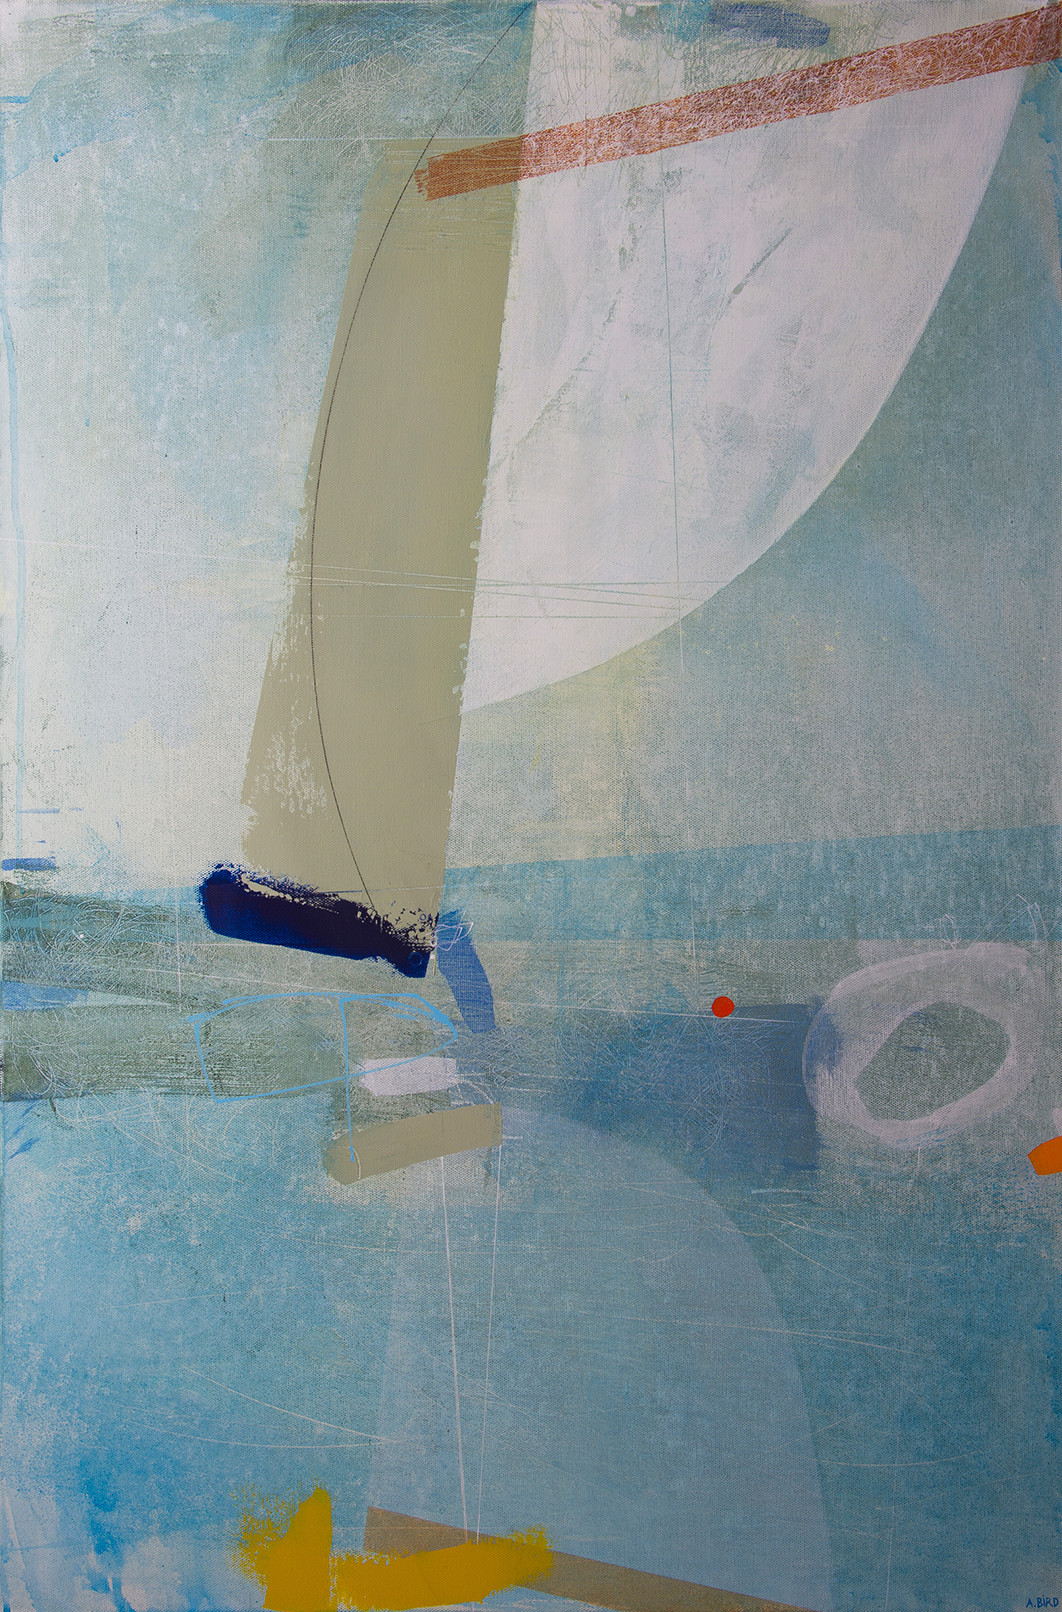 <span class=&#34;link fancybox-details-link&#34;><a href=&#34;/artists/77-andrew-bird/works/5269-andrew-bird-billowing-2017-18/&#34;>View Detail Page</a></span><div class=&#34;artist&#34;><strong>Andrew Bird</strong></div> 1969 – <div class=&#34;title&#34;><em>Billowing</em>, 2017/18</div> <div class=&#34;signed_and_dated&#34;>signed</div> <div class=&#34;medium&#34;>acrylic on canvas</div> <div class=&#34;dimensions&#34;>h 91.5 x w 61 cm<br /> 36 1/8 x 24 1/8 in</div><div class=&#34;price&#34;>£2,640.00</div><div class=&#34;copyright_line&#34;>OwnArt: £ 264 x 10 Months, 0% APR</div>